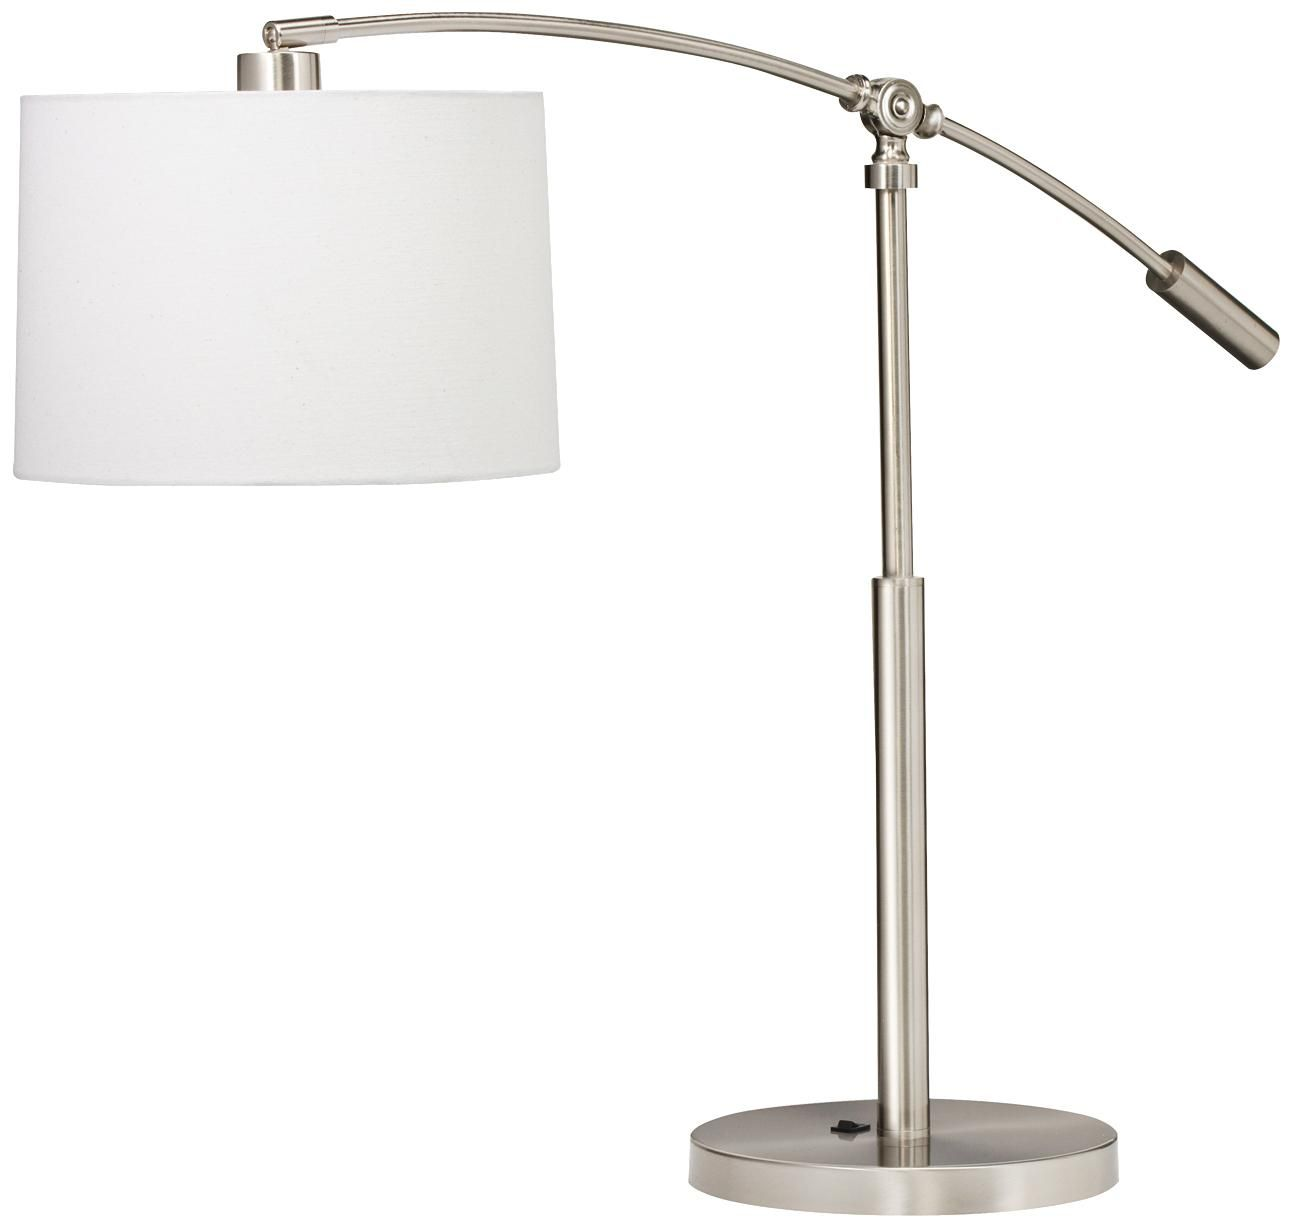 Kichler Cantilever Brushed Nickel Swing Arm Table Lamp P5869 Lamps Plus Table Lamp Lamp Contemporary Table Lamps